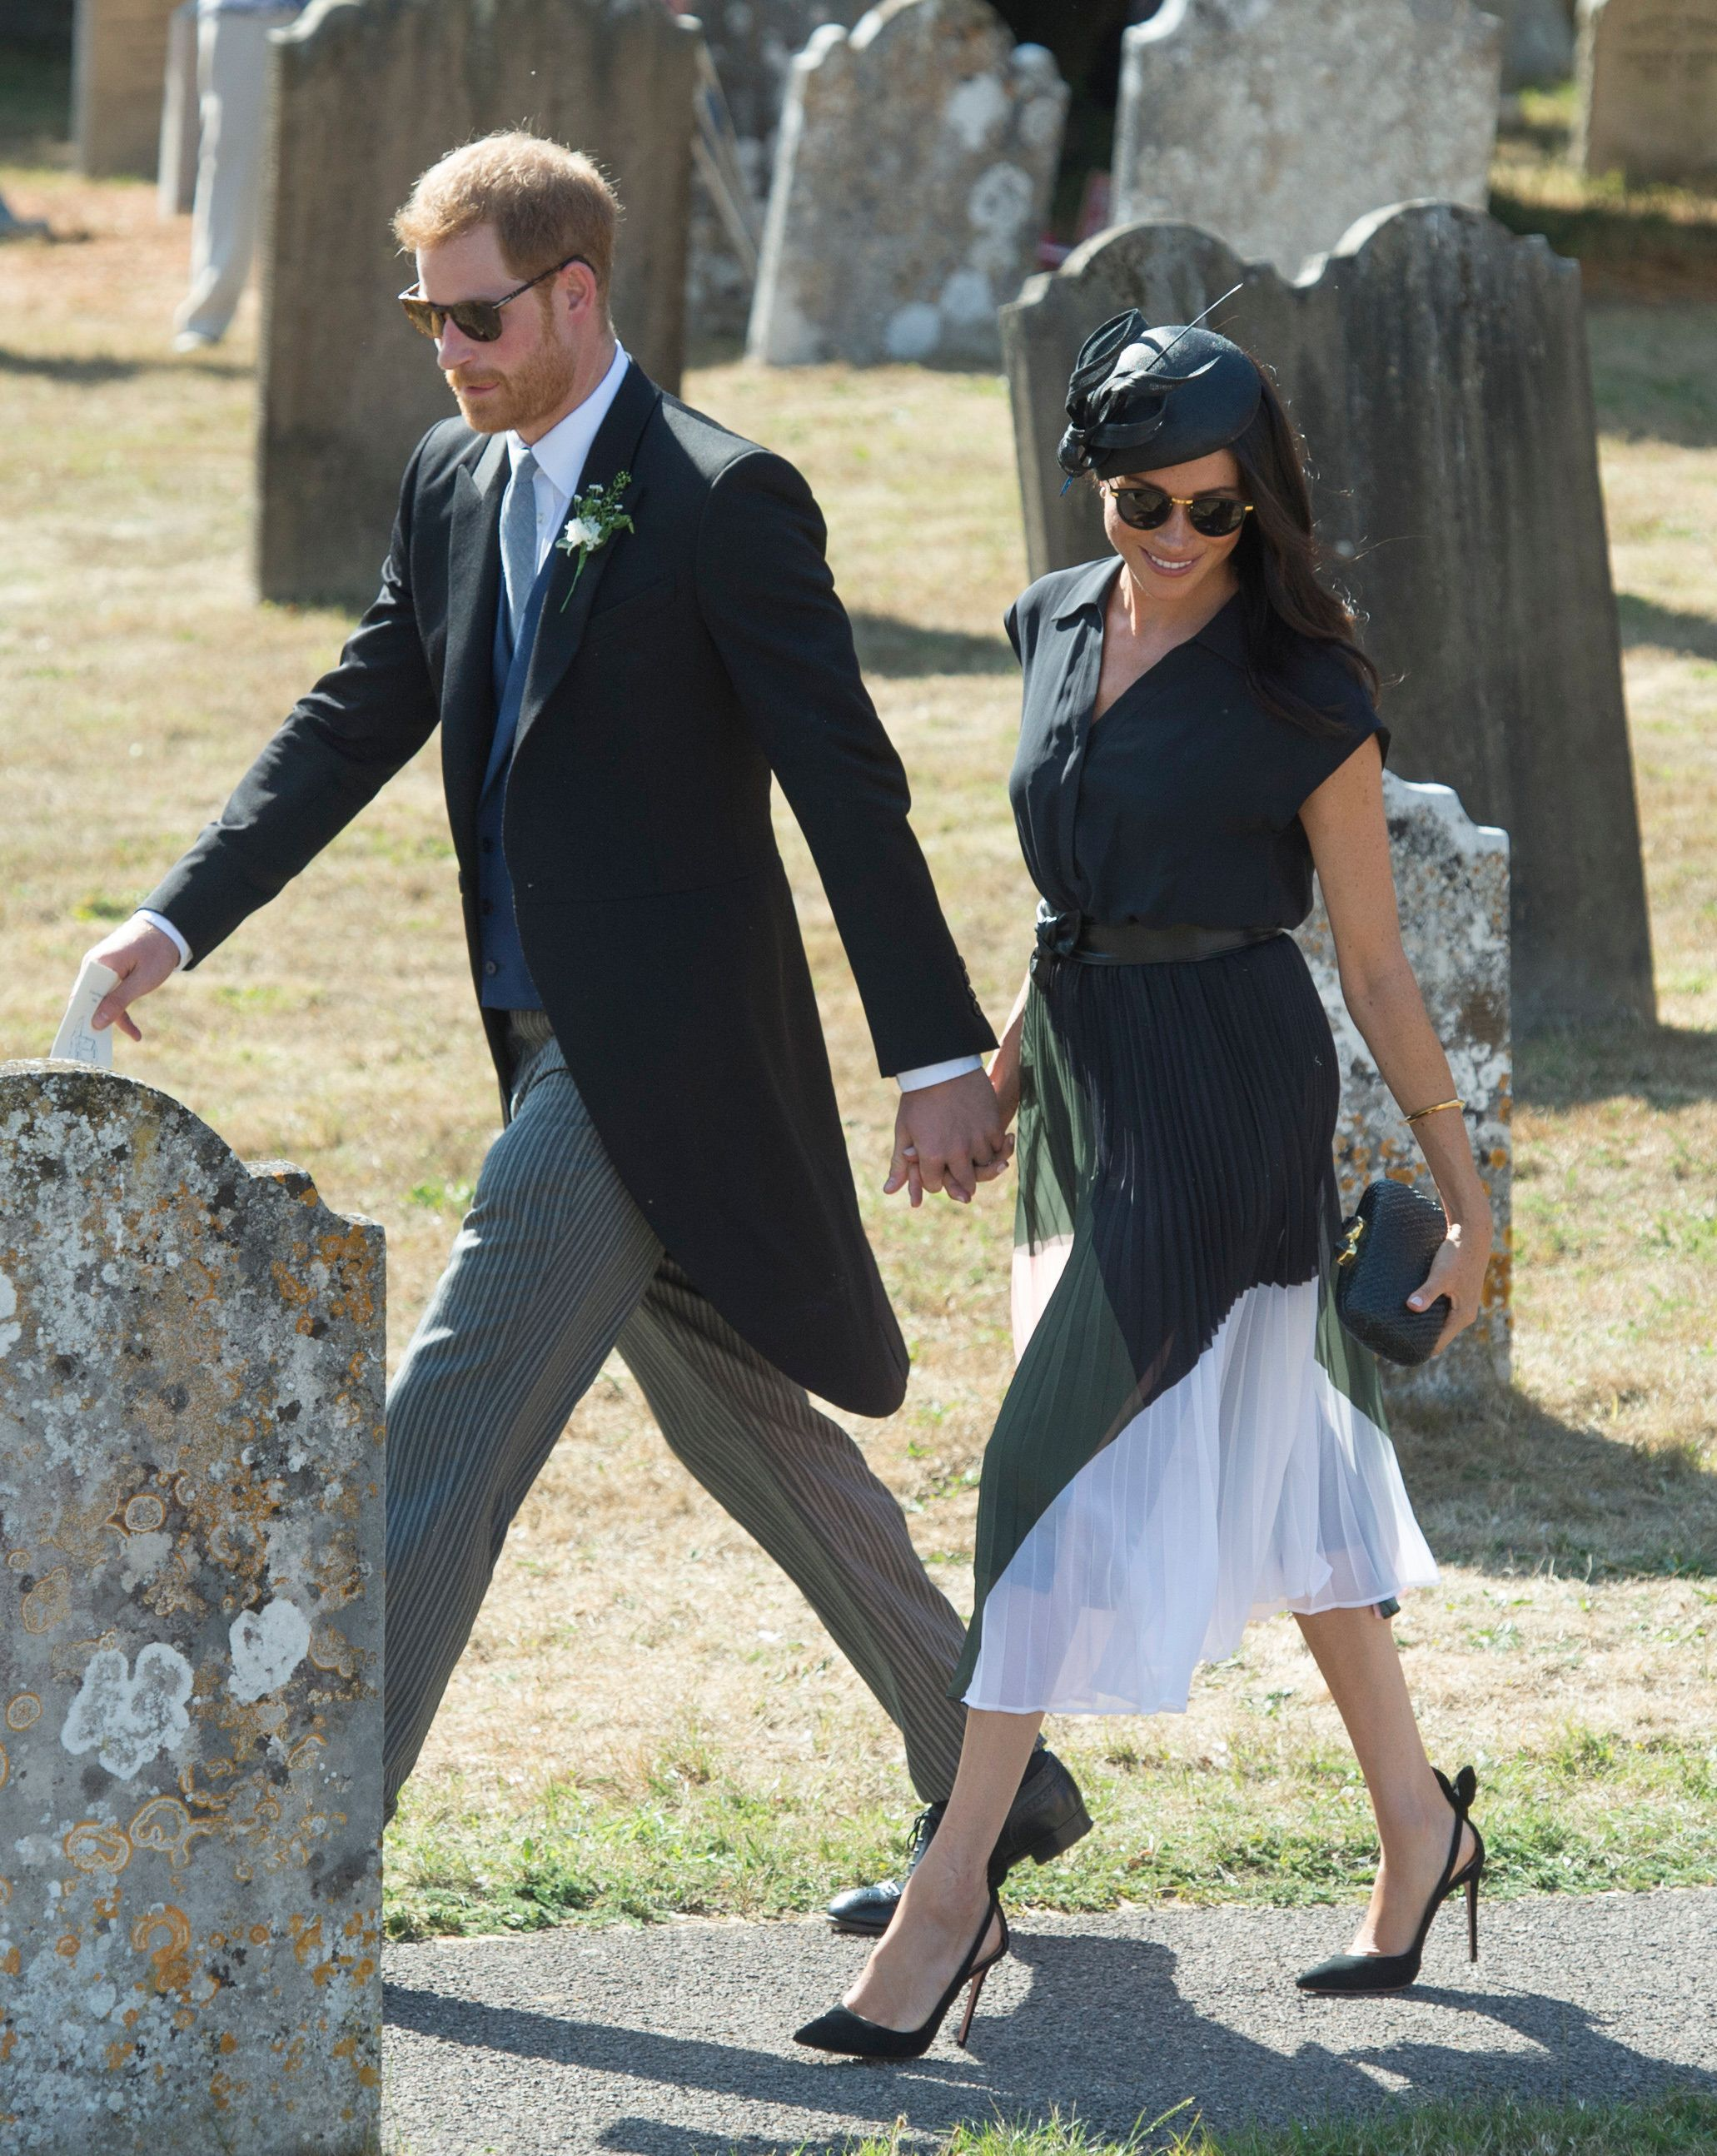 The Duke and Duchess of Sussex attend the wedding of Charlie Van Straubenzee and Daisy Jenks on Aug. 4 in Frensham, United Kingdom. Prince Harry attended the same prep school as Charlie van Straubenzee and they have been good friends ever since.